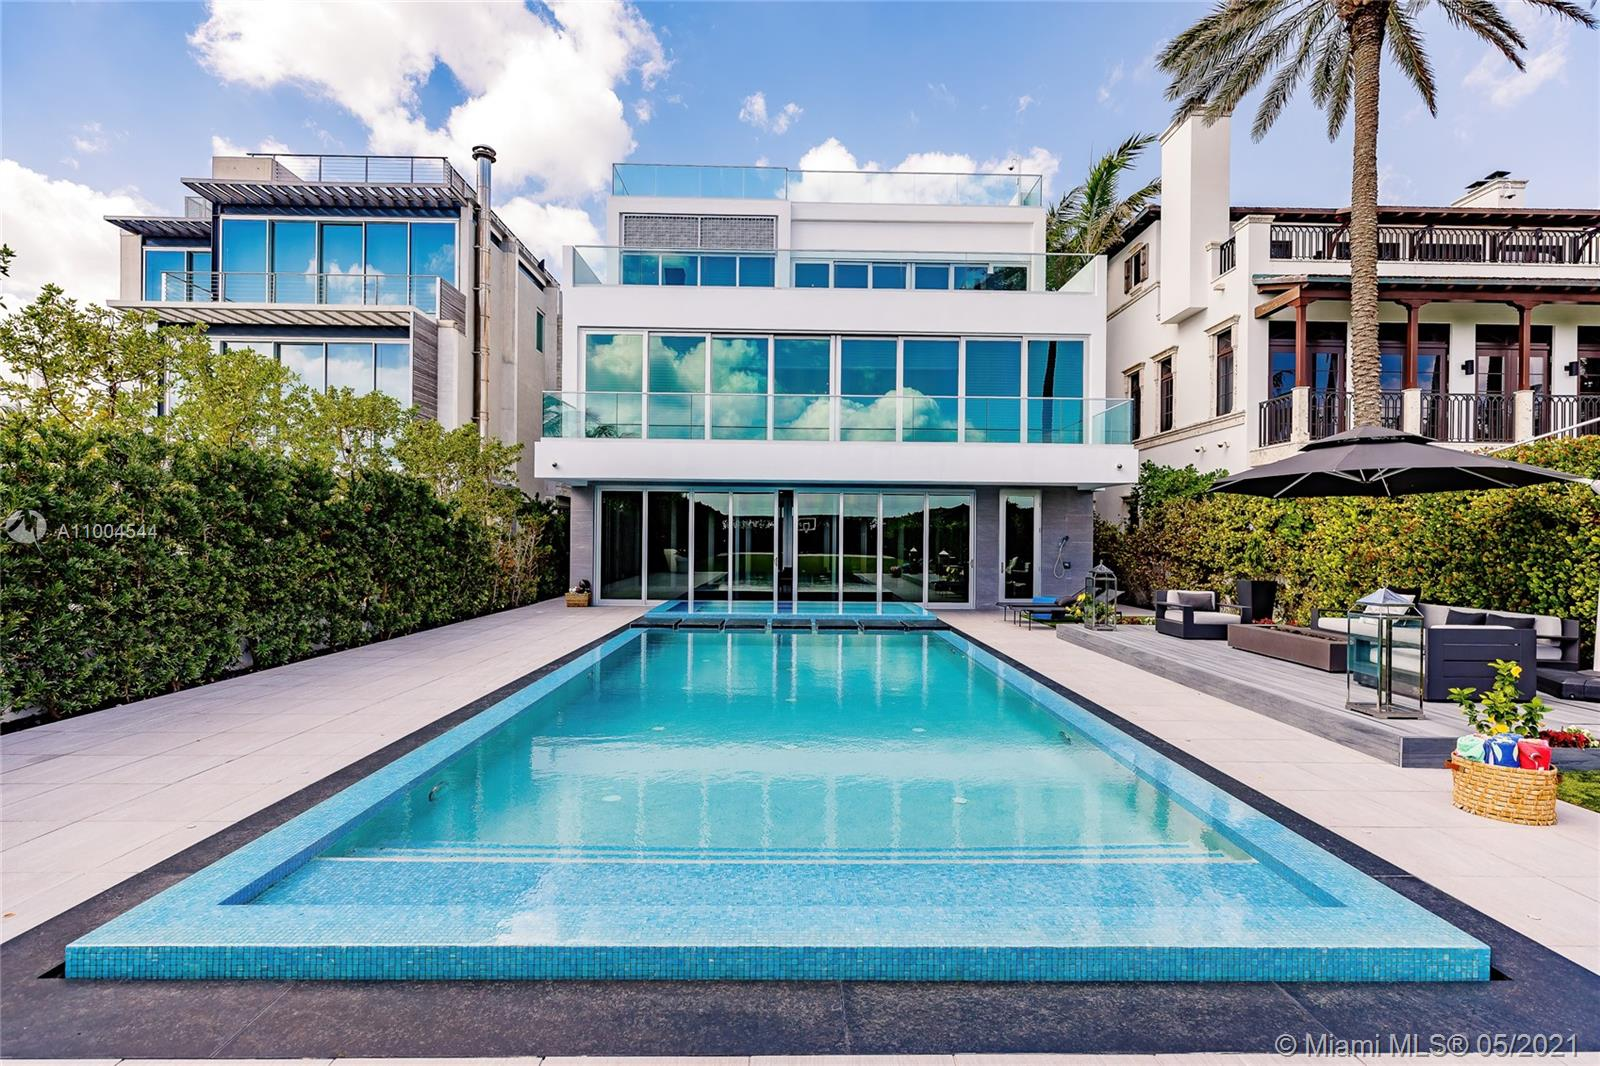 Enter to this exclusive home in the white sandy beaches of the Atlantic Ocean of Miami. The exclusive community of Altos Del Mar is centrally located surrounded by restaurants, minutes from the exclusive Bal Harbour Shops. This 3-stories+terrace offers the celebrity lifestyle, full amenities Home. Attention to the details, newly built 2017. 1st floor features home theater, bar, office, family room, floor-ceiling sliding glass doors opening to a summer kitchen, heated pool, jacuzzi, cabana, and large manicured fenced backyard with its own Basketball court. 2nd level grand entertaining room w/ fireplace, custom-built kitchen, wine cellar, walls of glass onto large terrace. A pathway leads you to the four bedrooms suite. 3rd floor owner master suite w/ a private terrace overlooking the ocean.